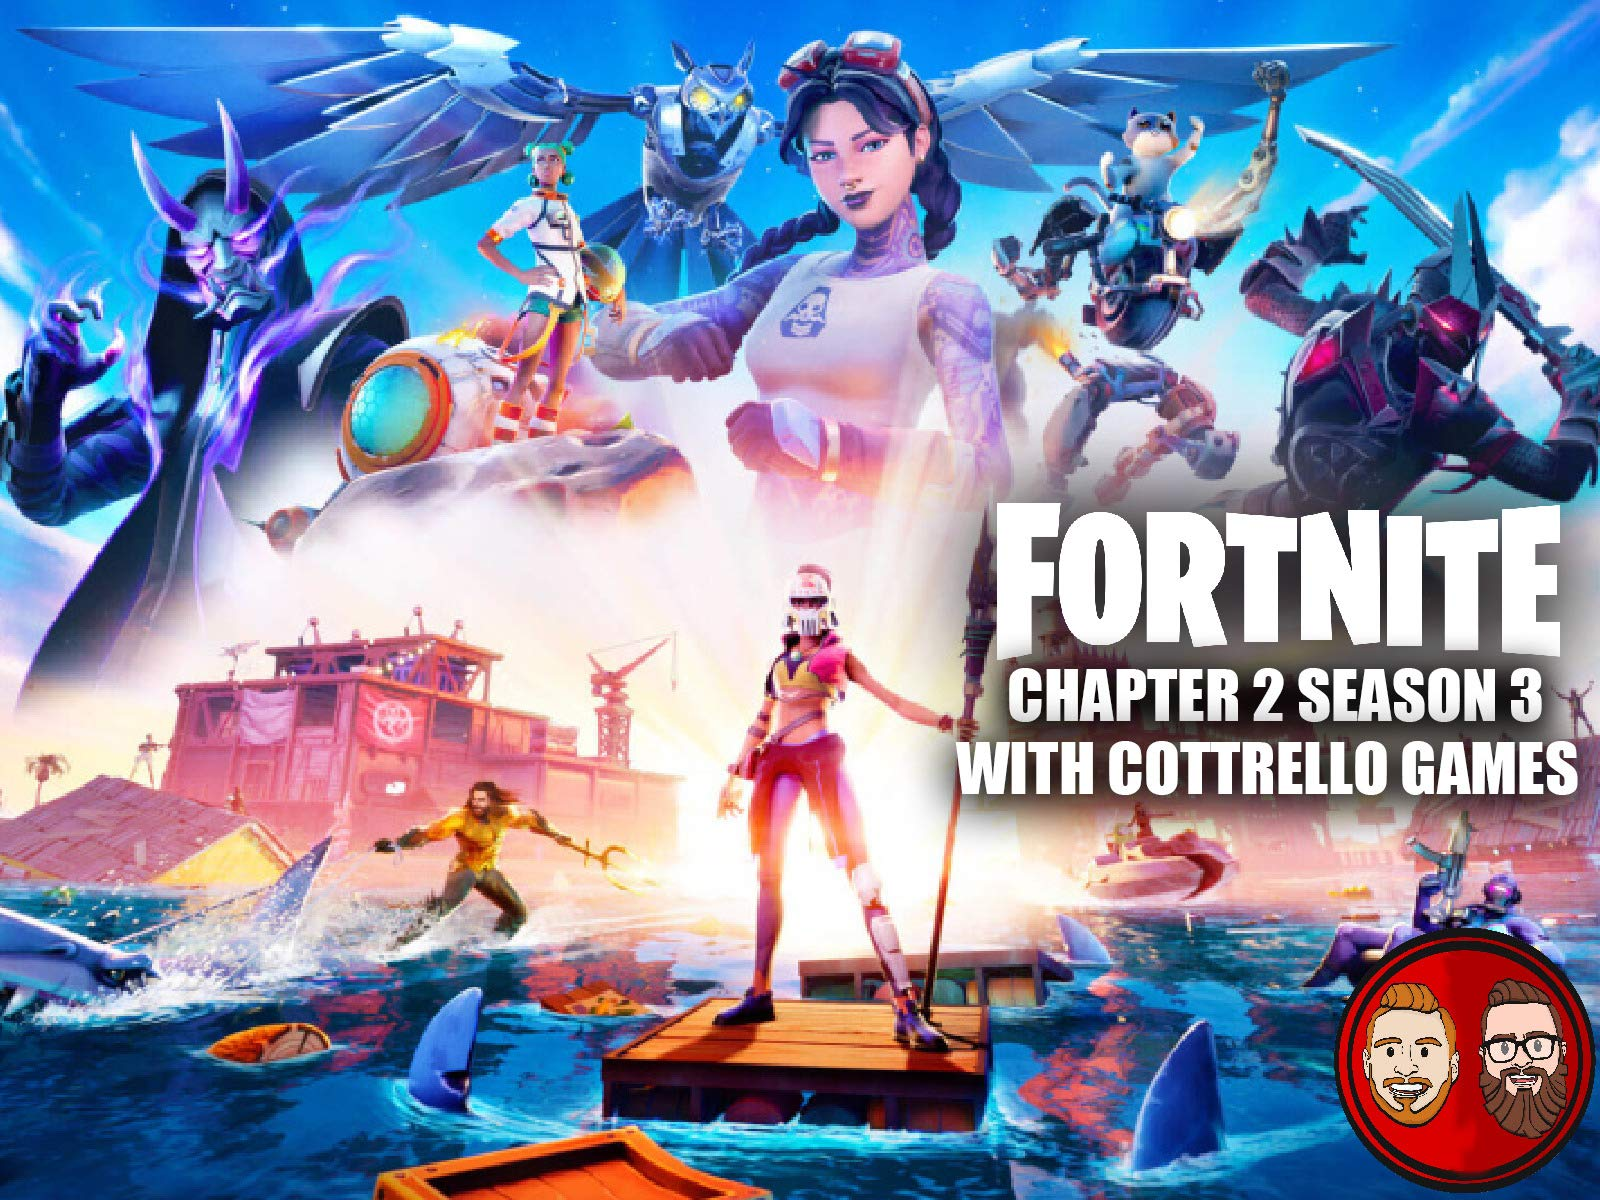 Fortnite Chapter 2 Season 3 with Cottrello Games